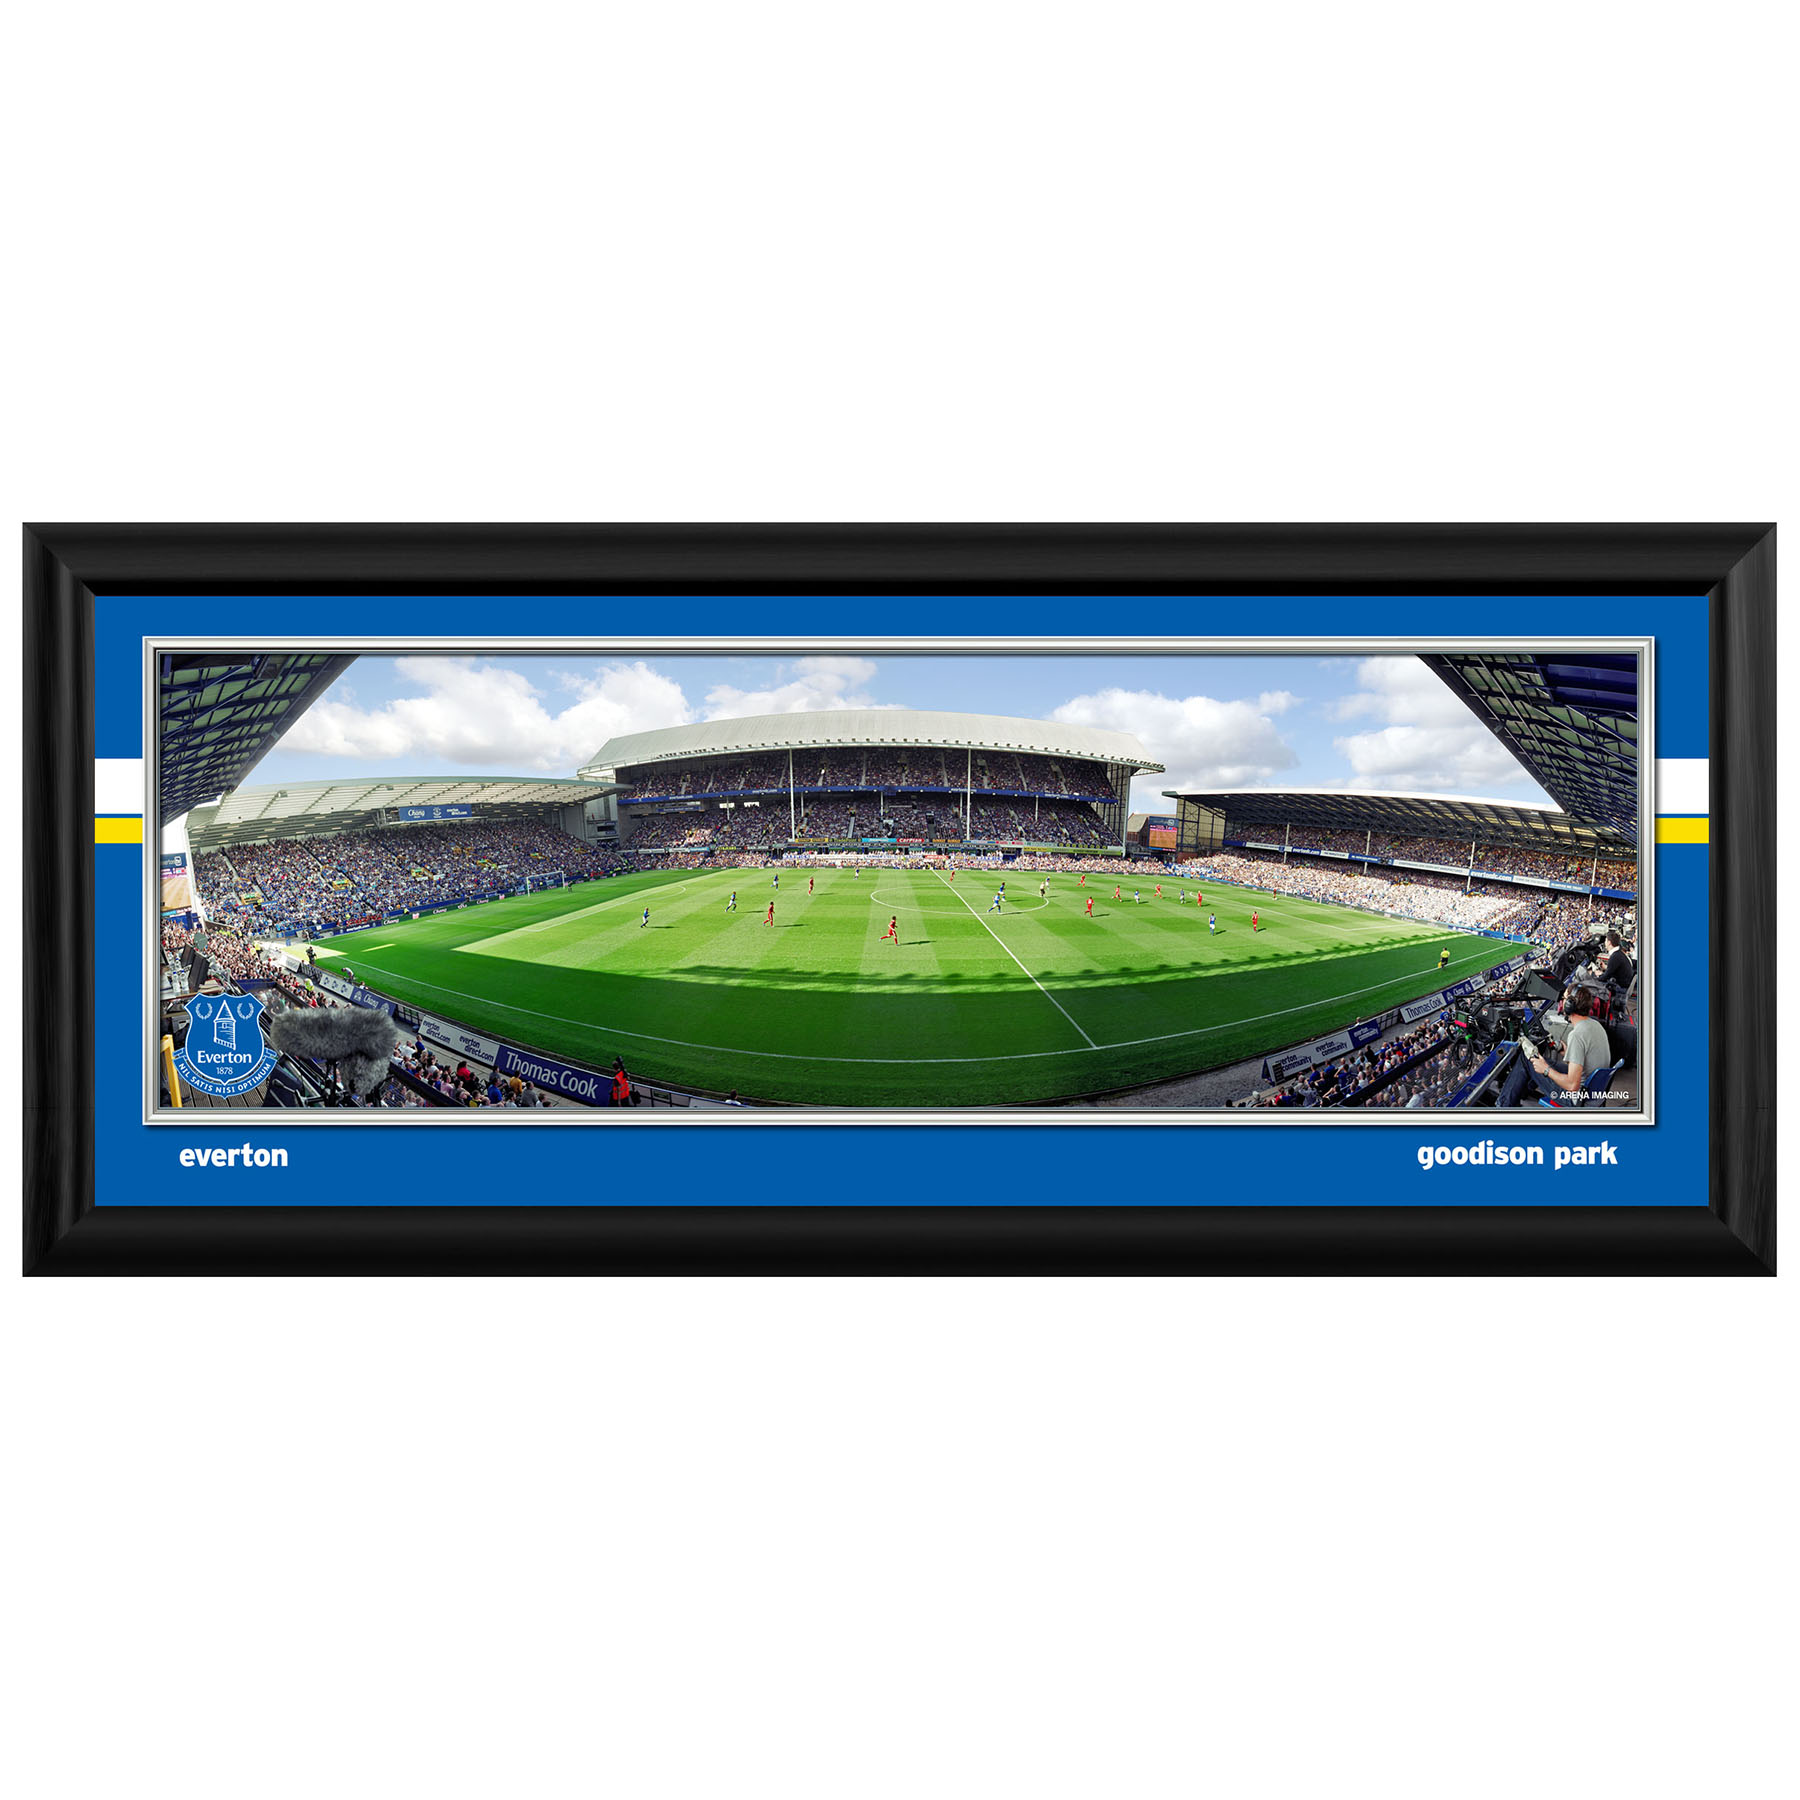 Everton Desktop Matchday Stadium Panoramic